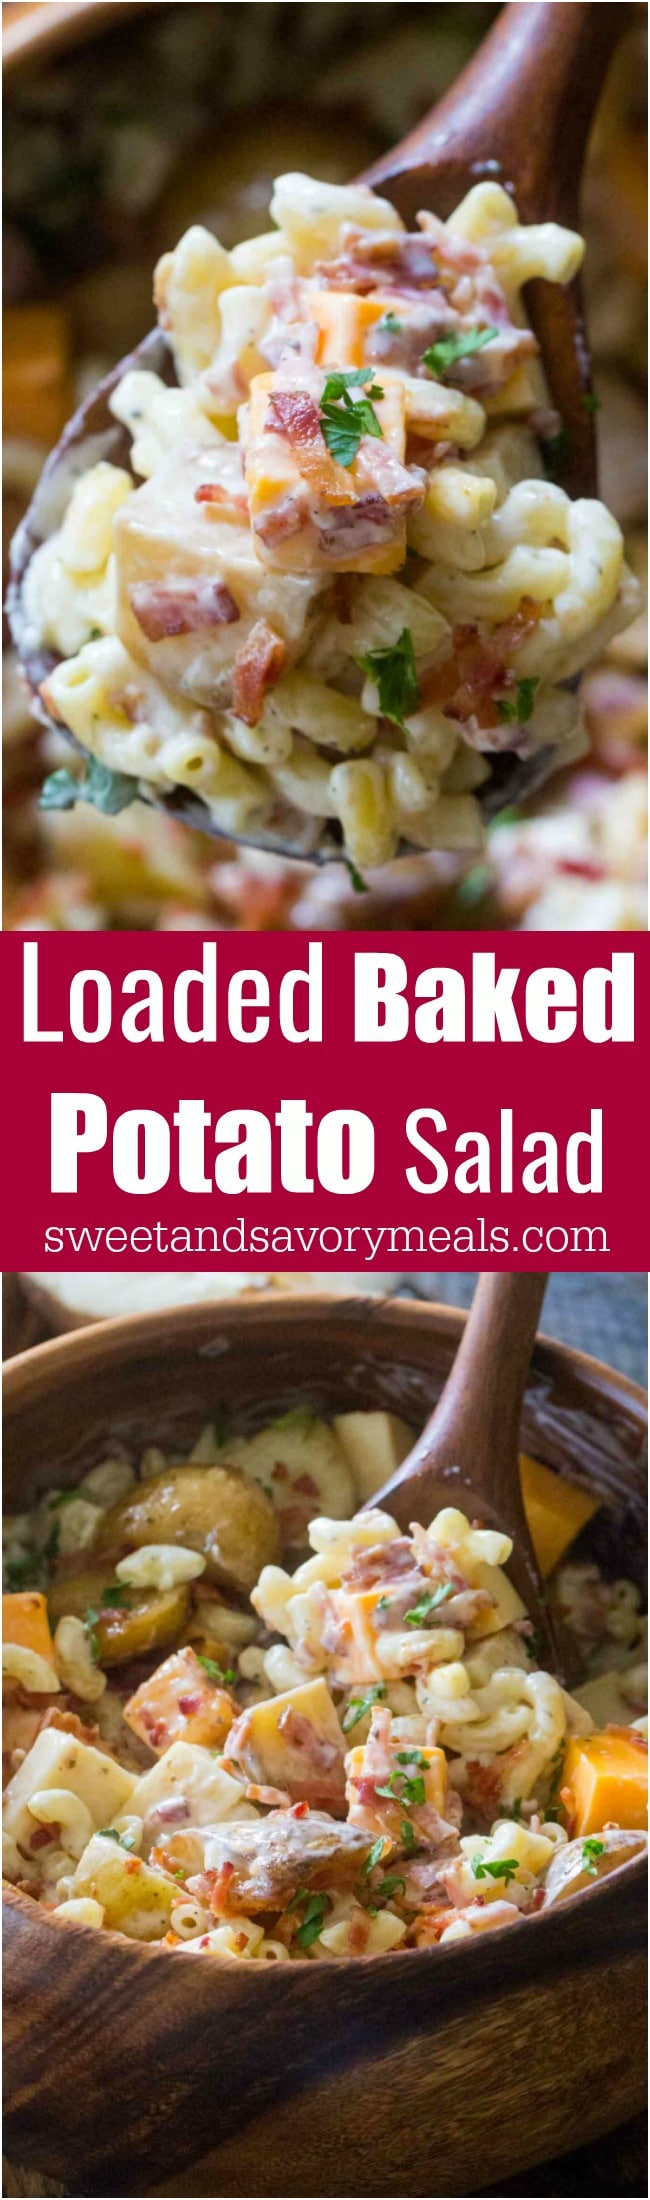 Loaded Baked Potato Salad is the perfect meal to bring to a potluck or to make for a party! Delicious, packed with baked potatoes, cheese and bacon!